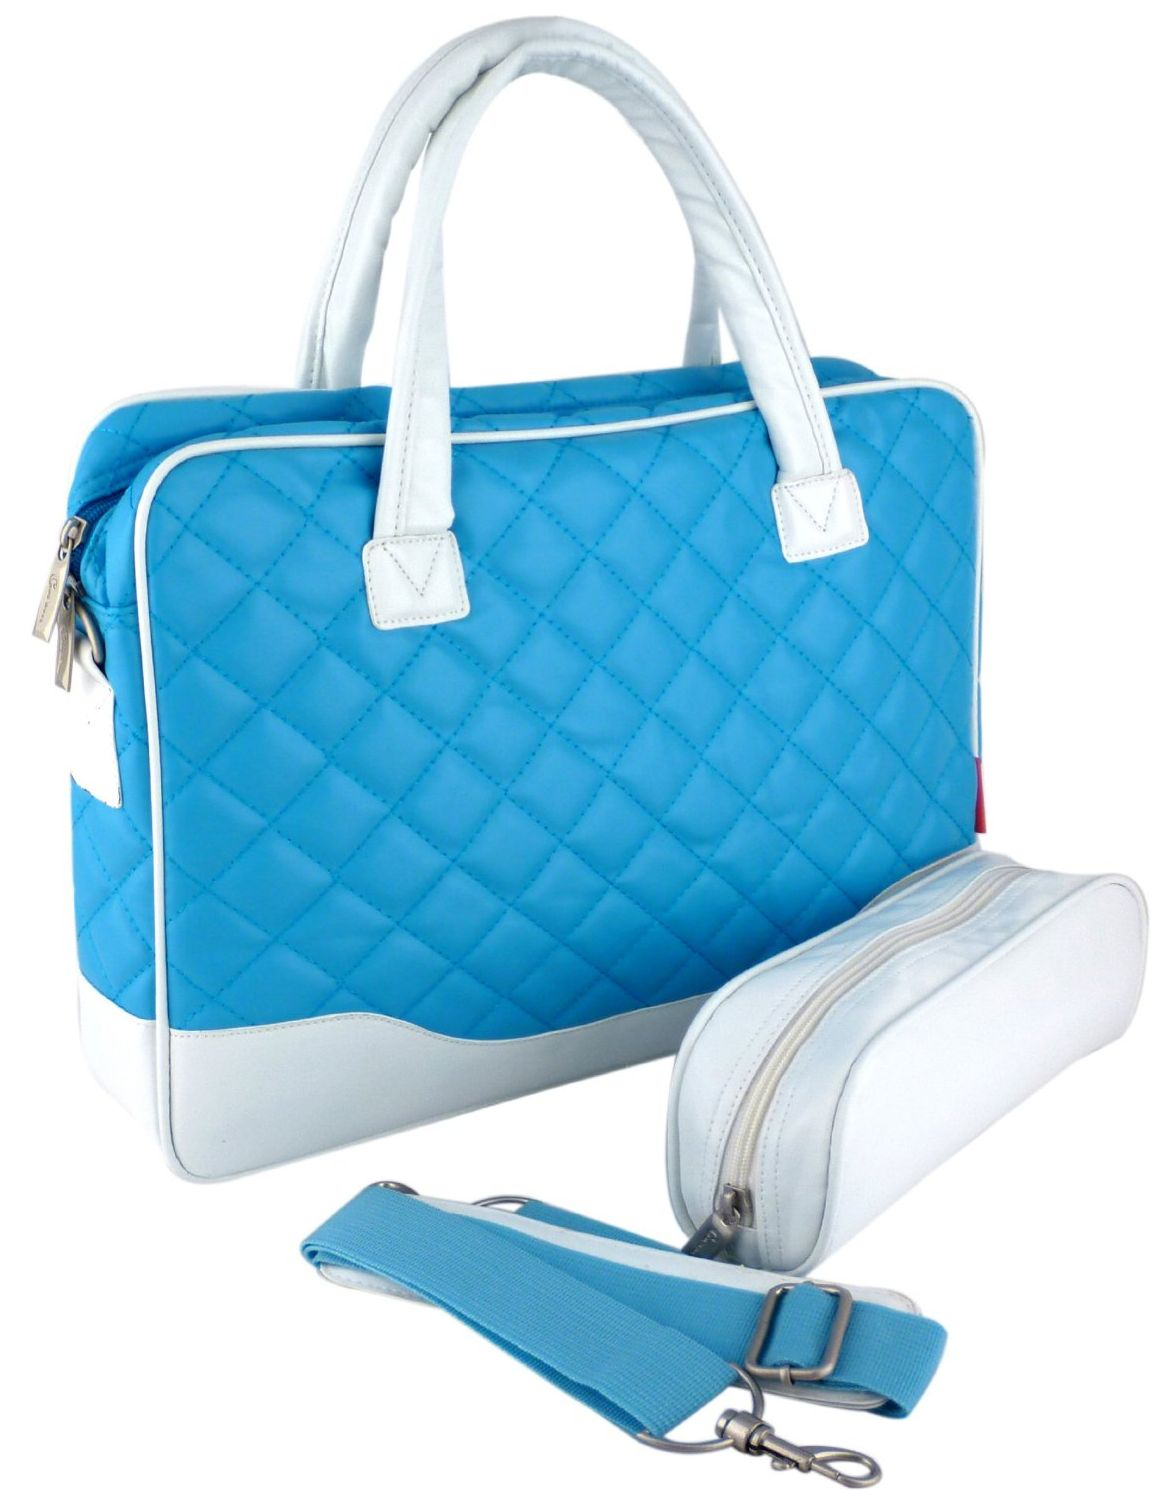 Baby Blue Diamond Quilted Pattern with White Accent Trim Bubble Foam Padded Laptop Computer